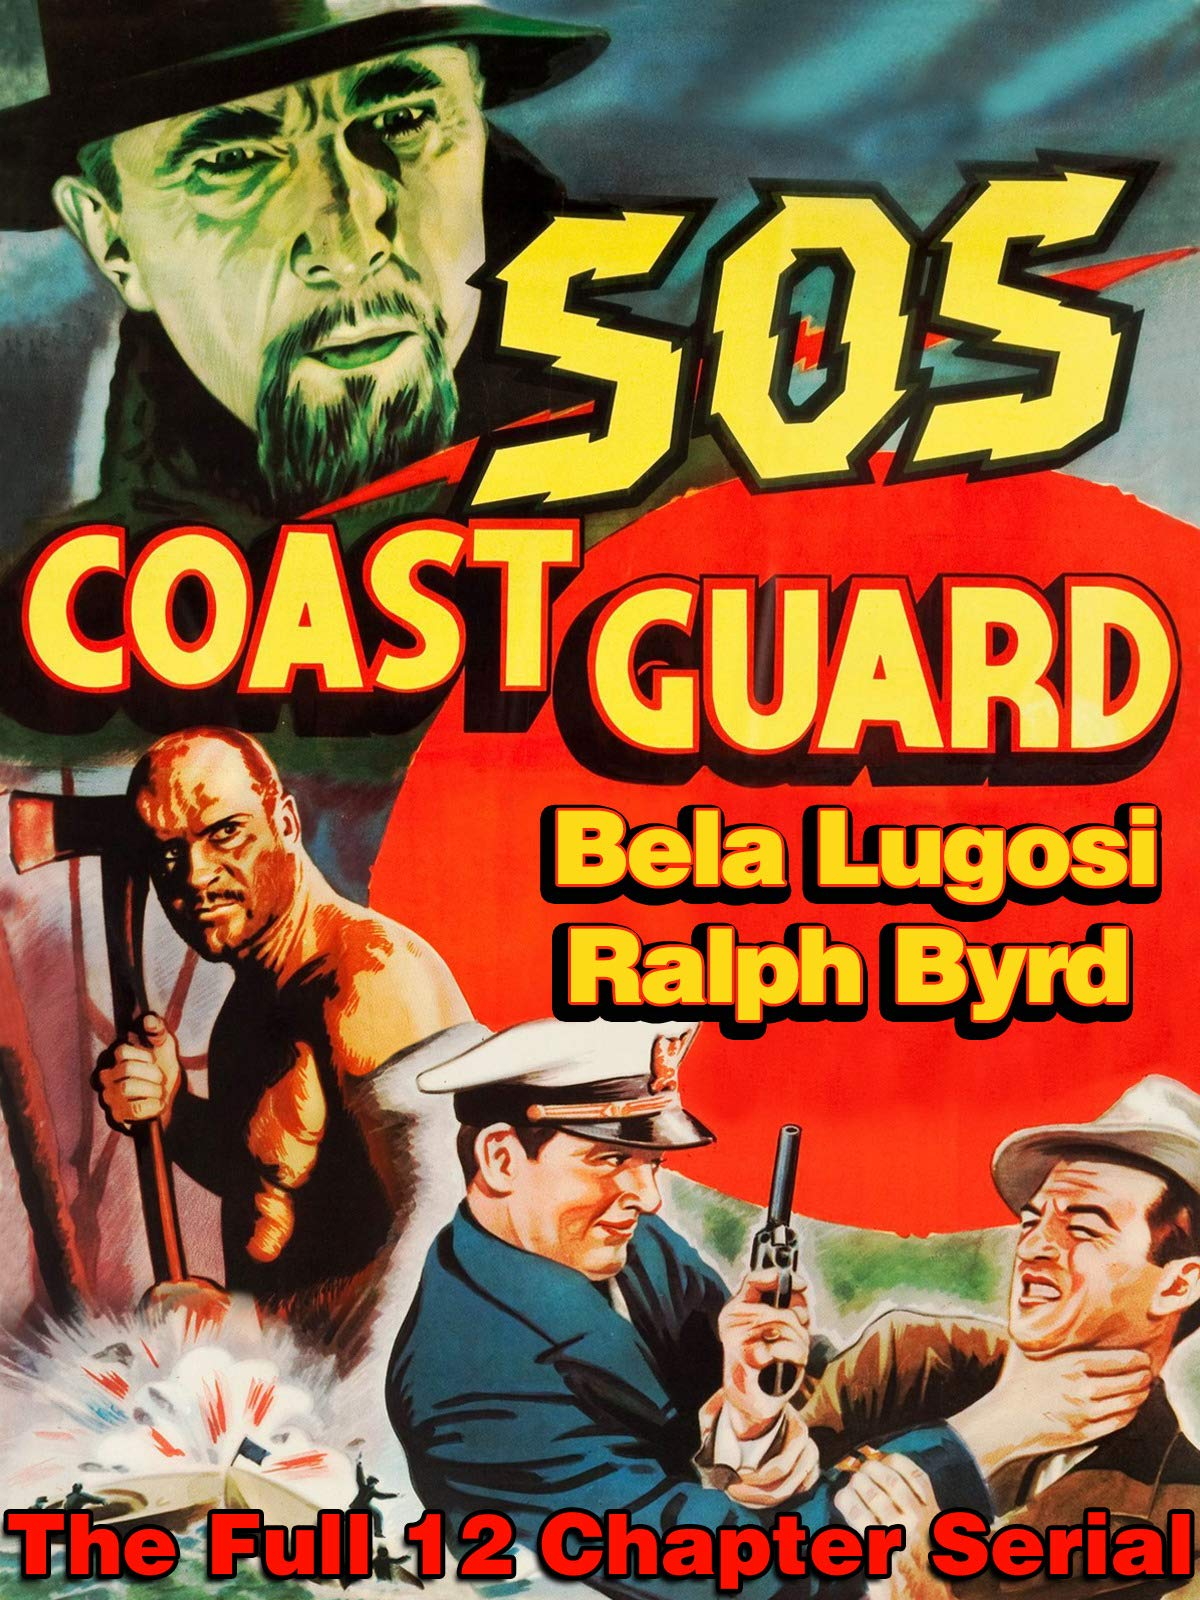 S.O.S. Coast Guard - Bela Lugosi, Ralph Byrd, The Full 12 Chapter Serial